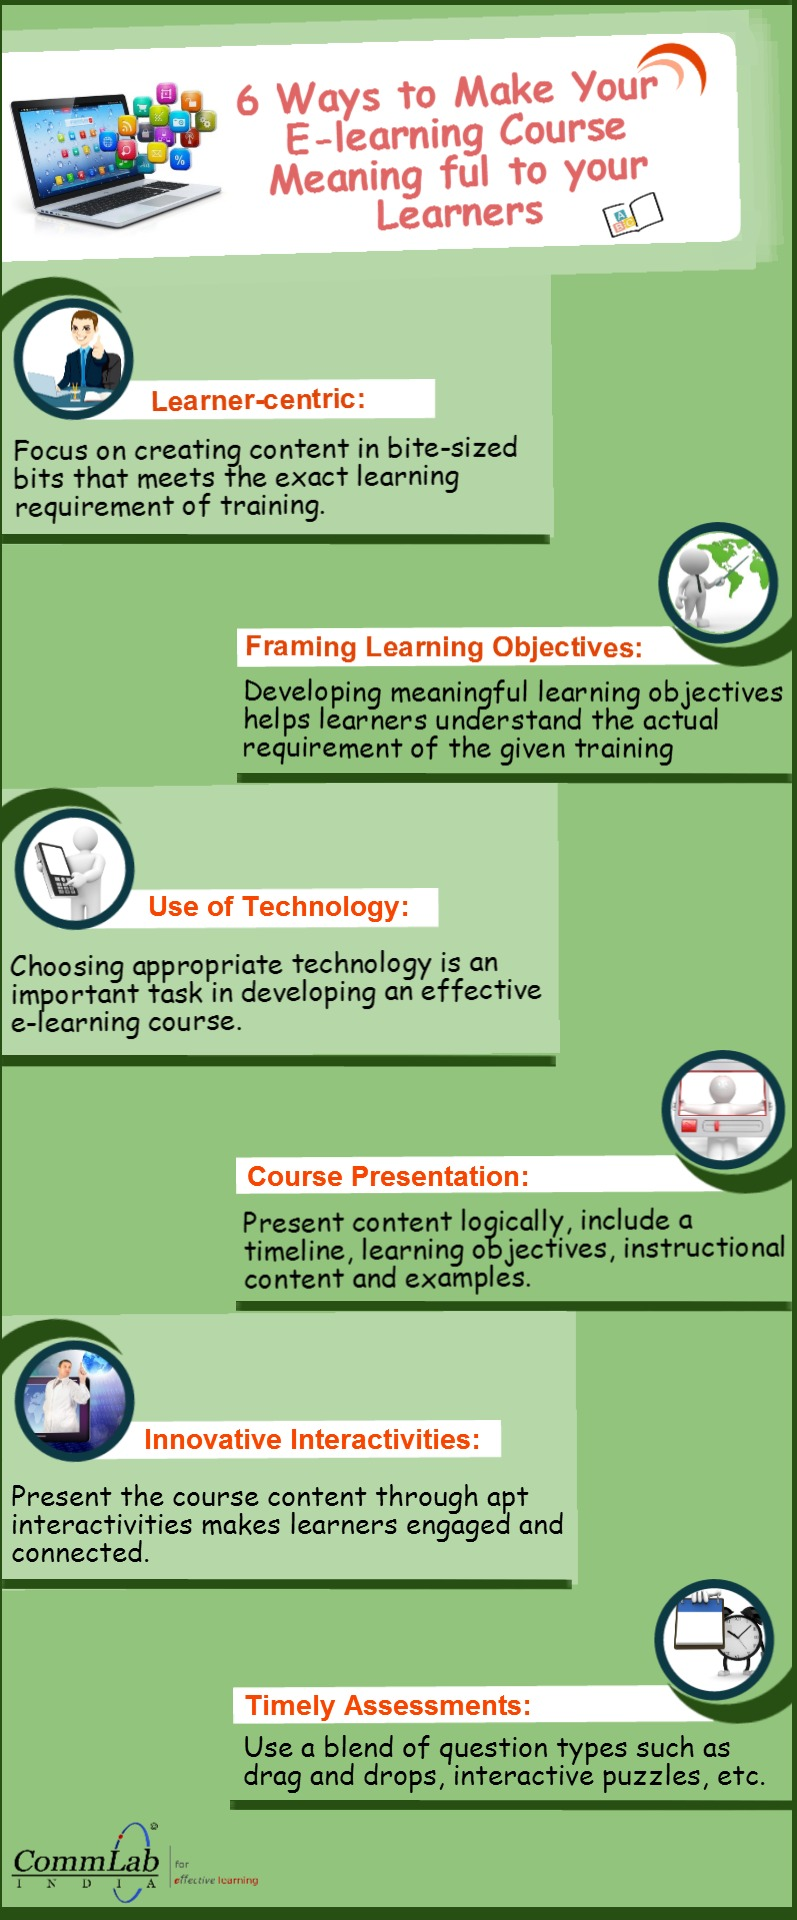 6 Ways to Make your E-learning Course Meaningful – An Infographic